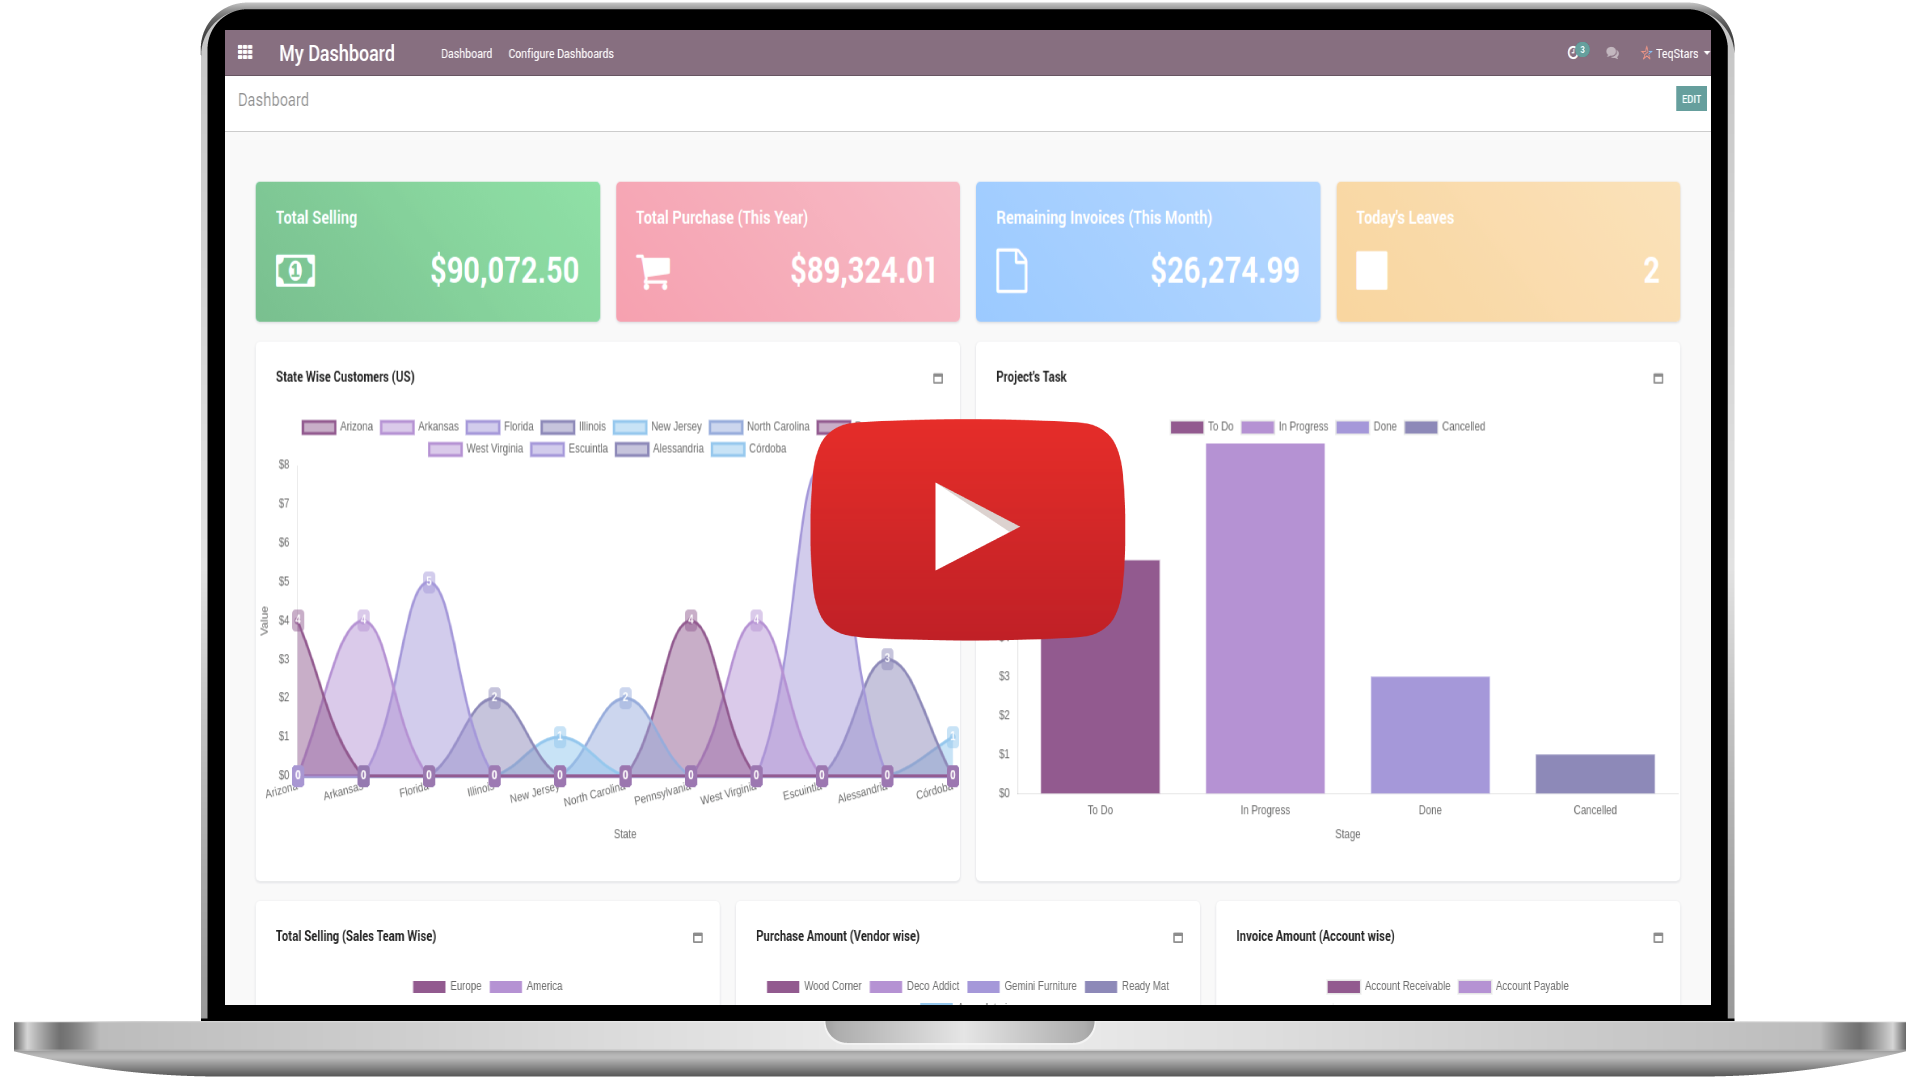 All in One Dashboard Demo Video